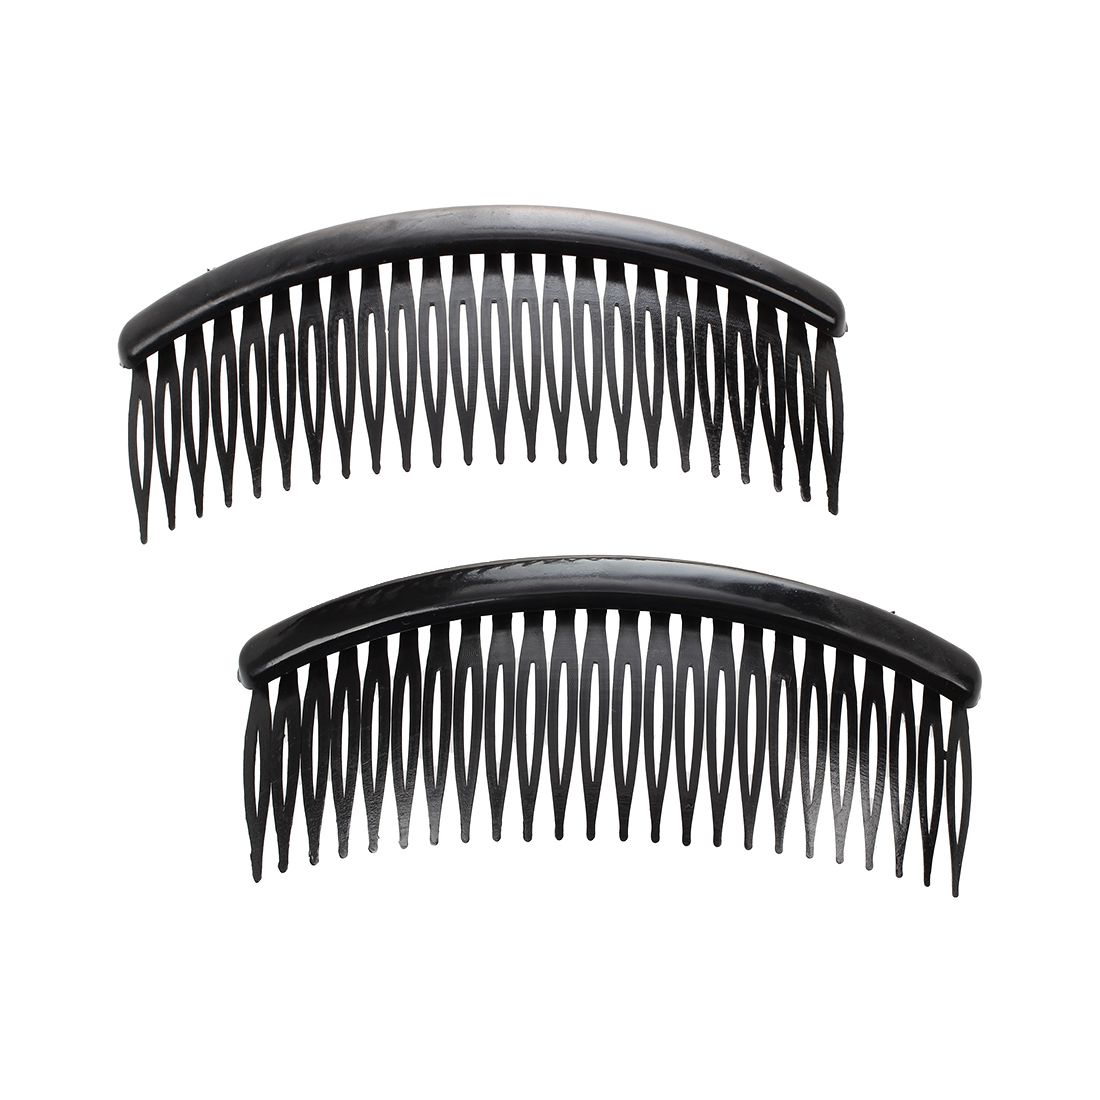 2 Pcs  Black Plastic 24 Teeth Hair Comb Clip Clamp For Lady Girls